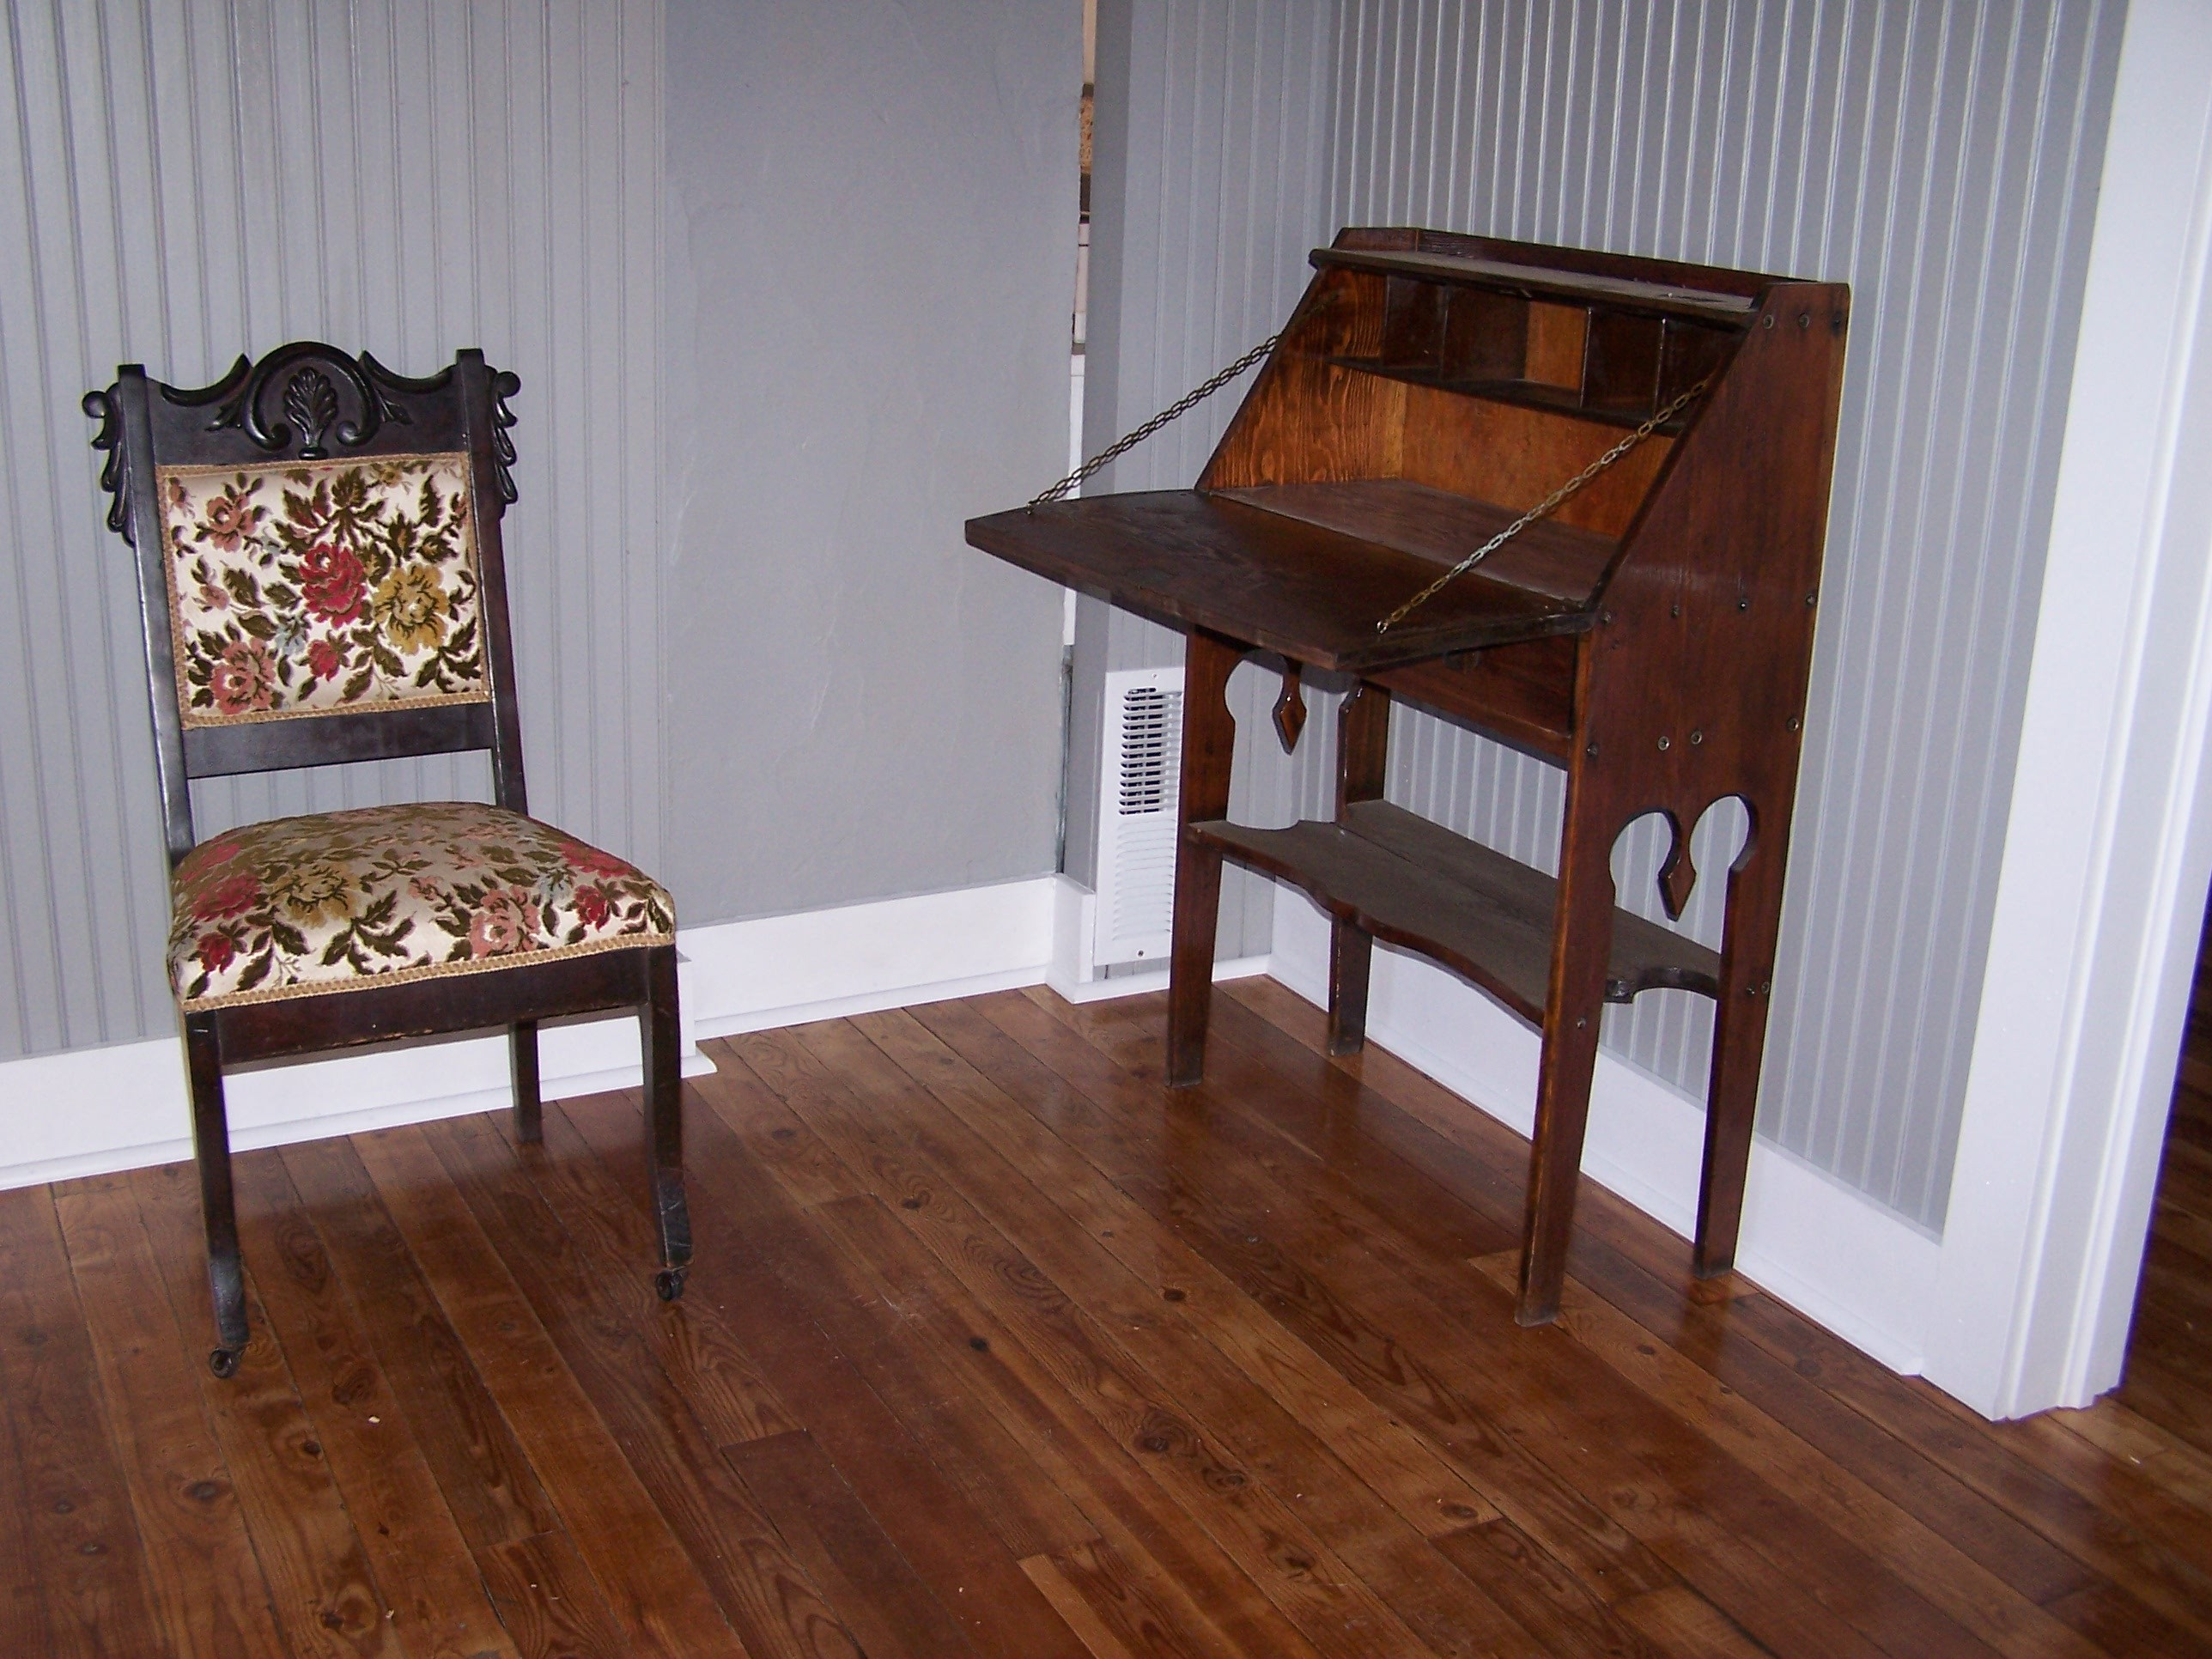 View of the writing desk and chair in the living room